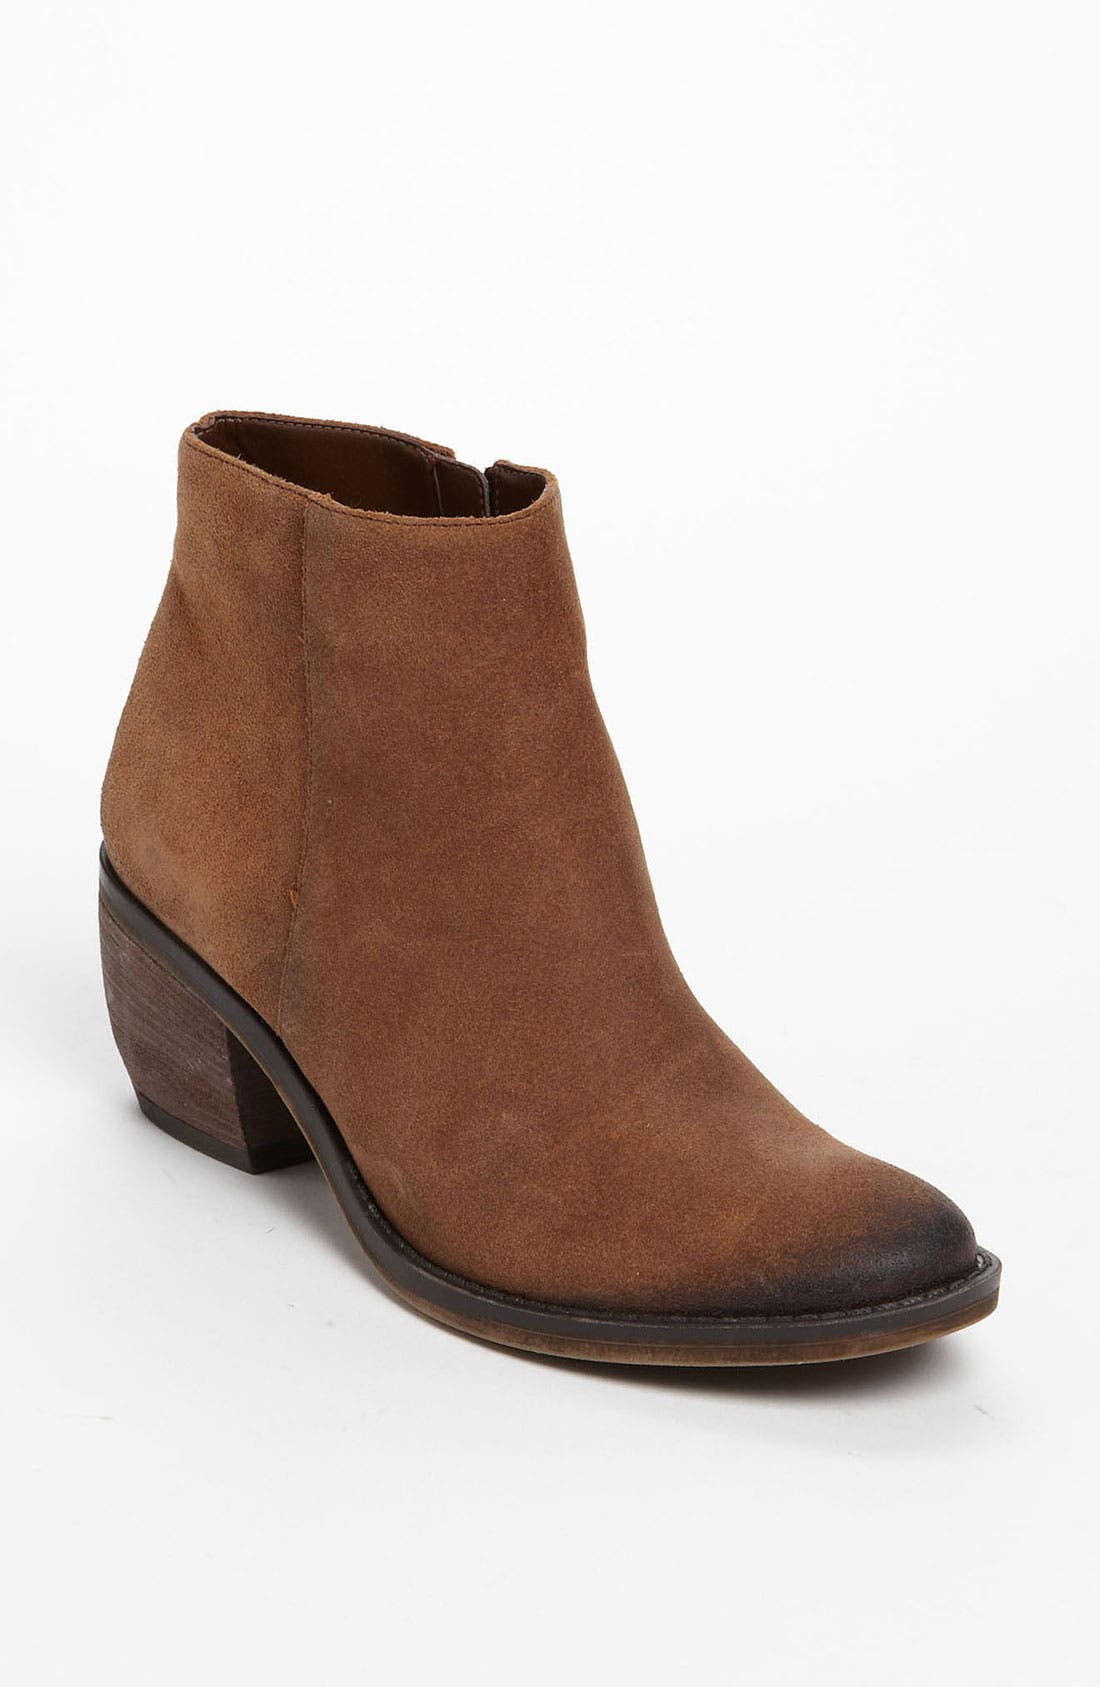 Main Image - Naturalizer 'Onset' Ankle Boot